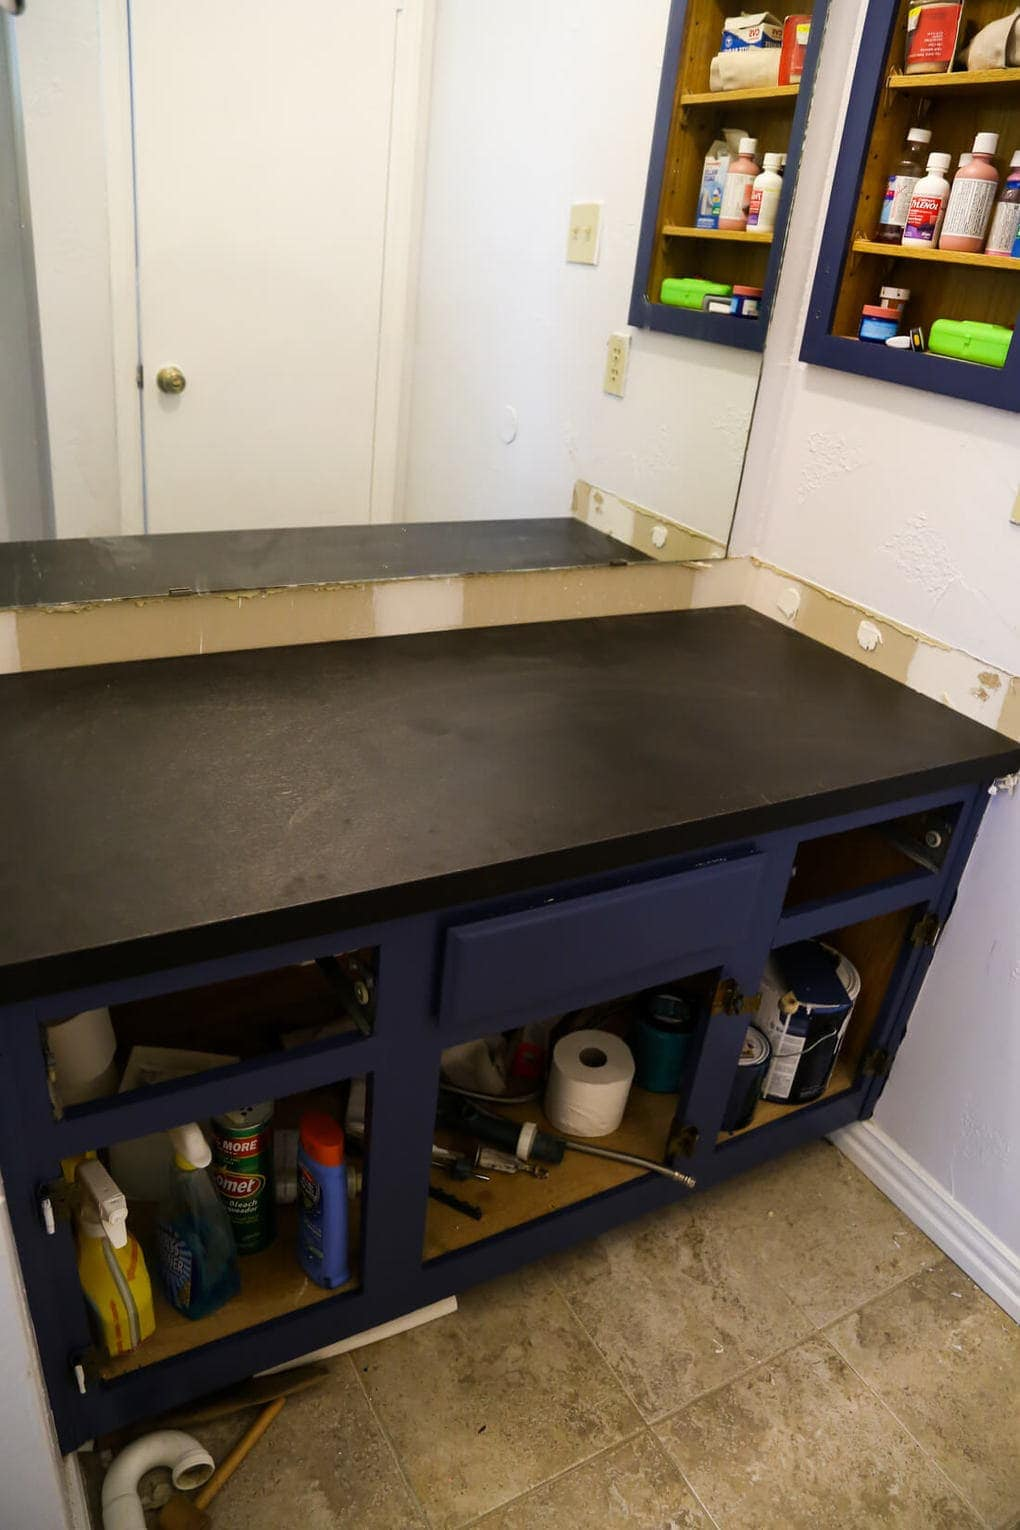 How to replace an ugly bathroom counter - it's quick, easy, and surprisingly affordable! Easy, budget-friendly option for getting a new counter in your bathroom without calling in a pro.